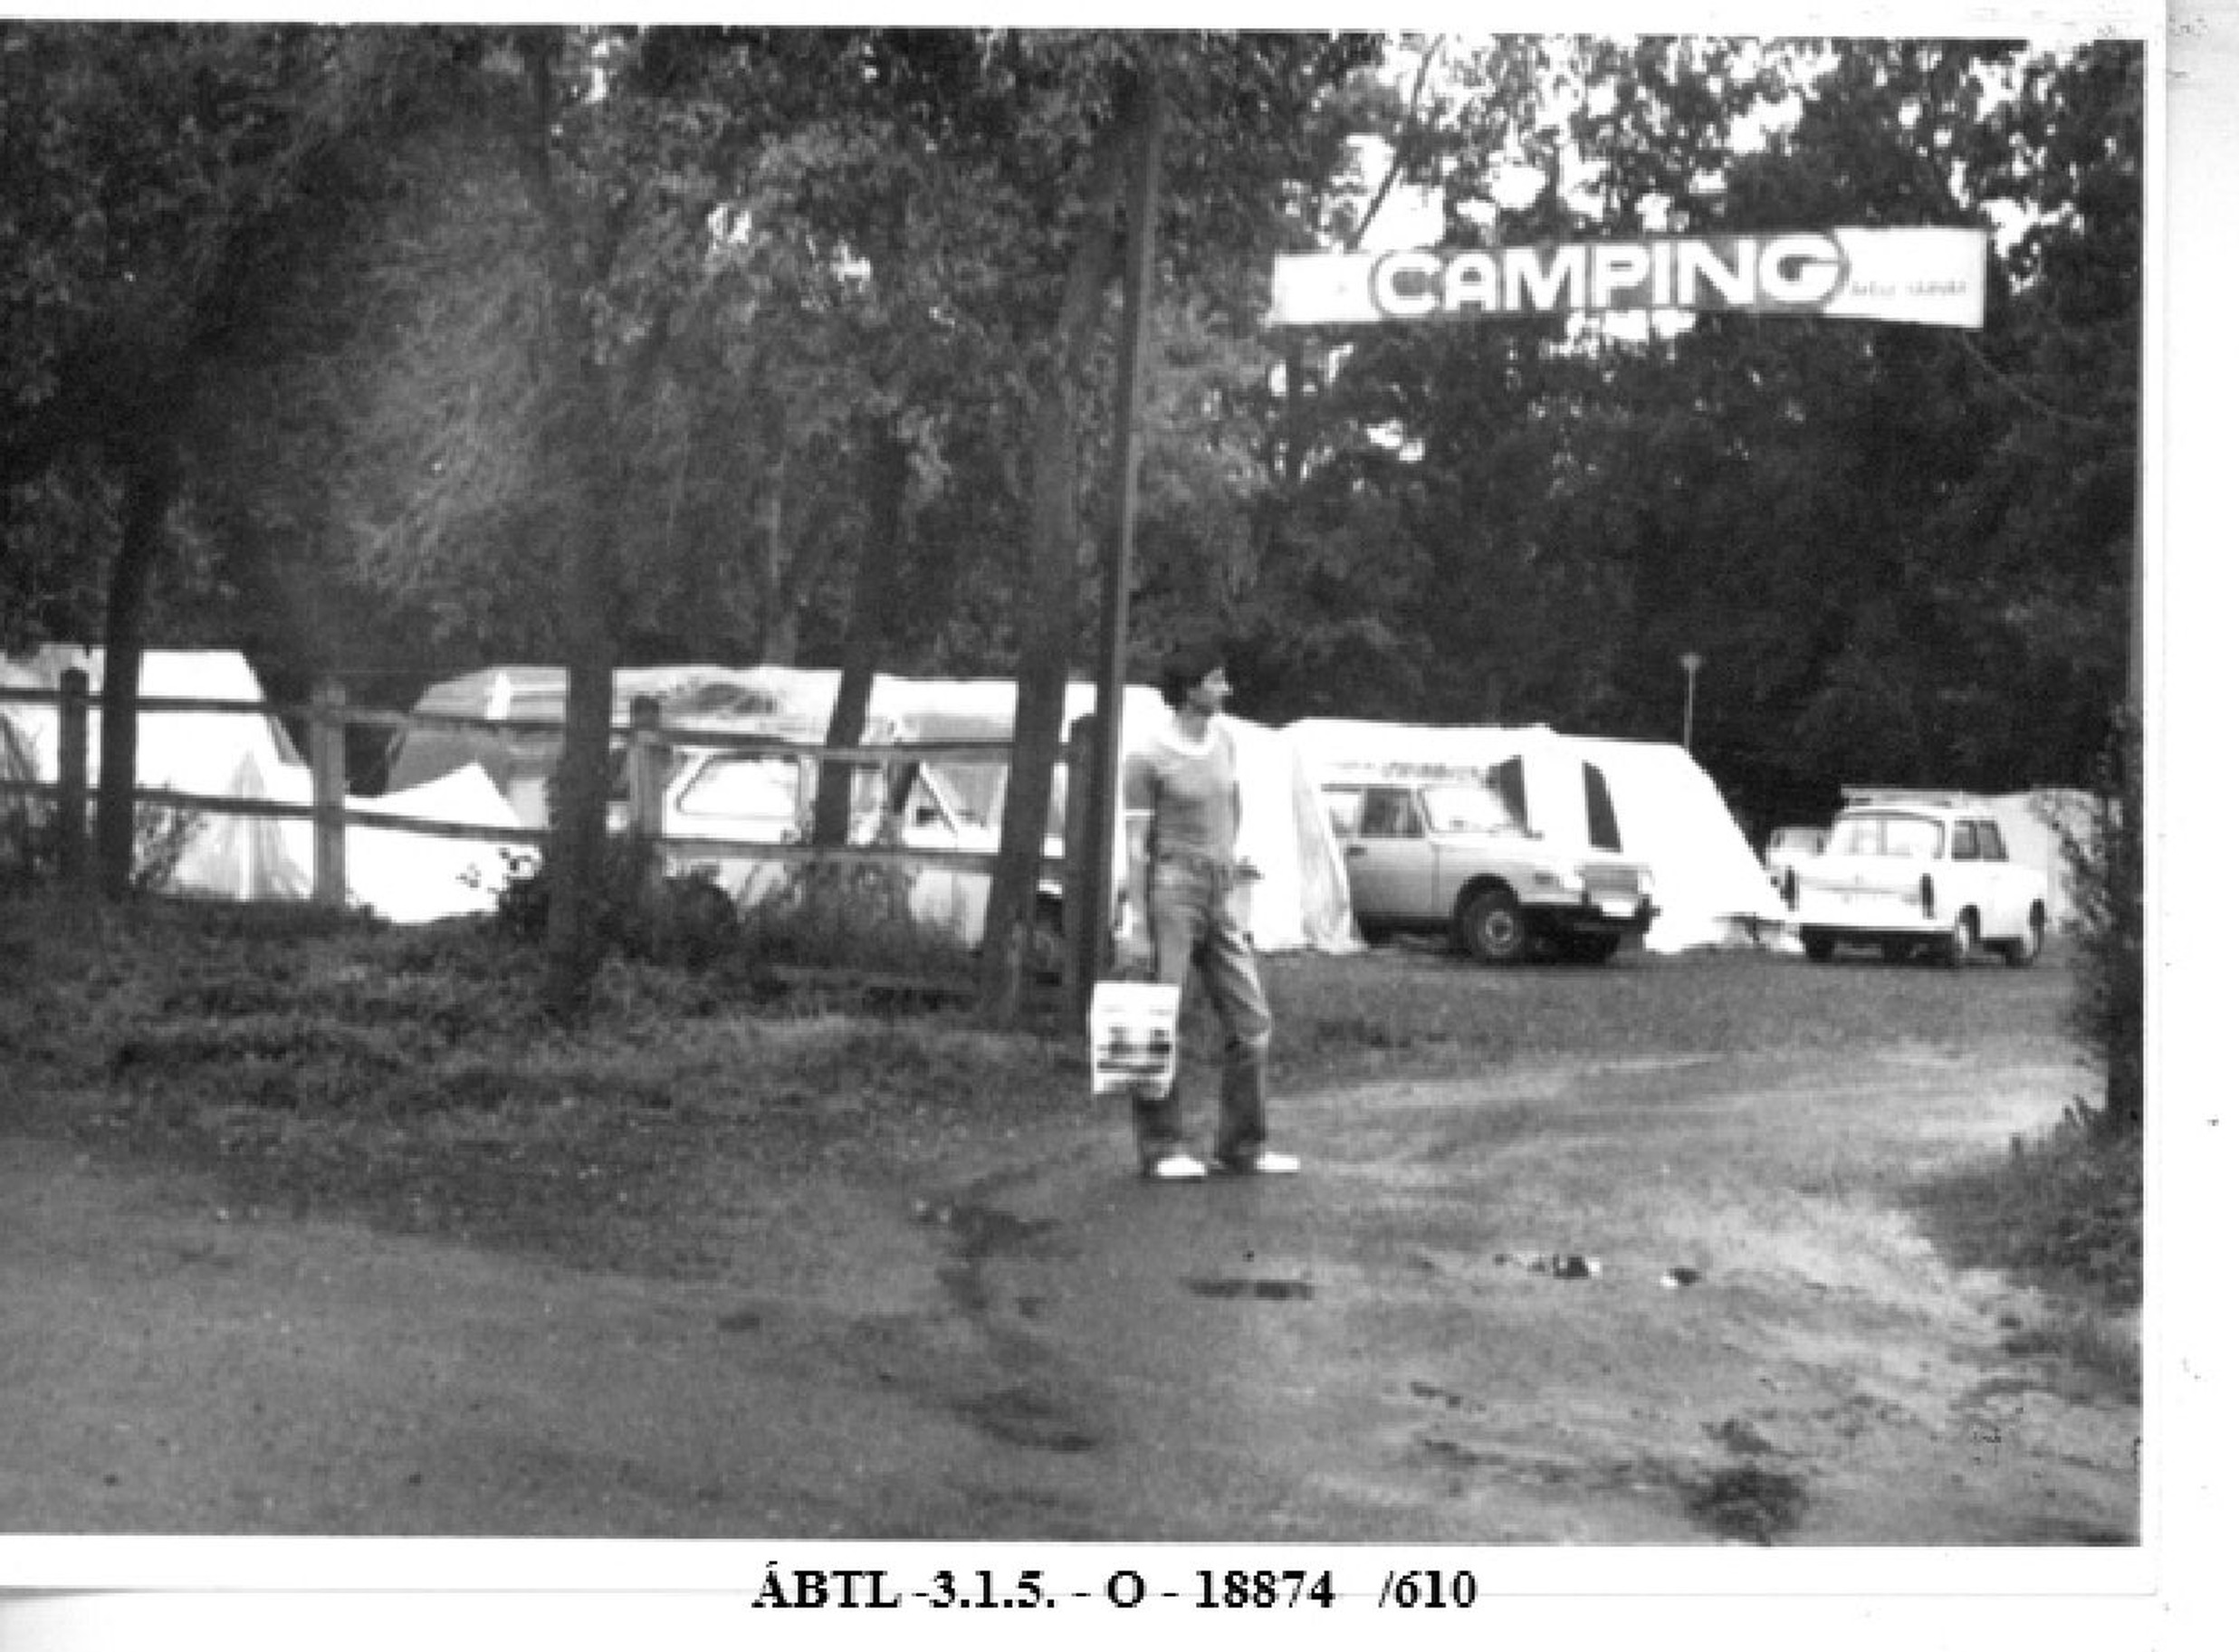 State security photo on Christian community 's camping (August 1983)